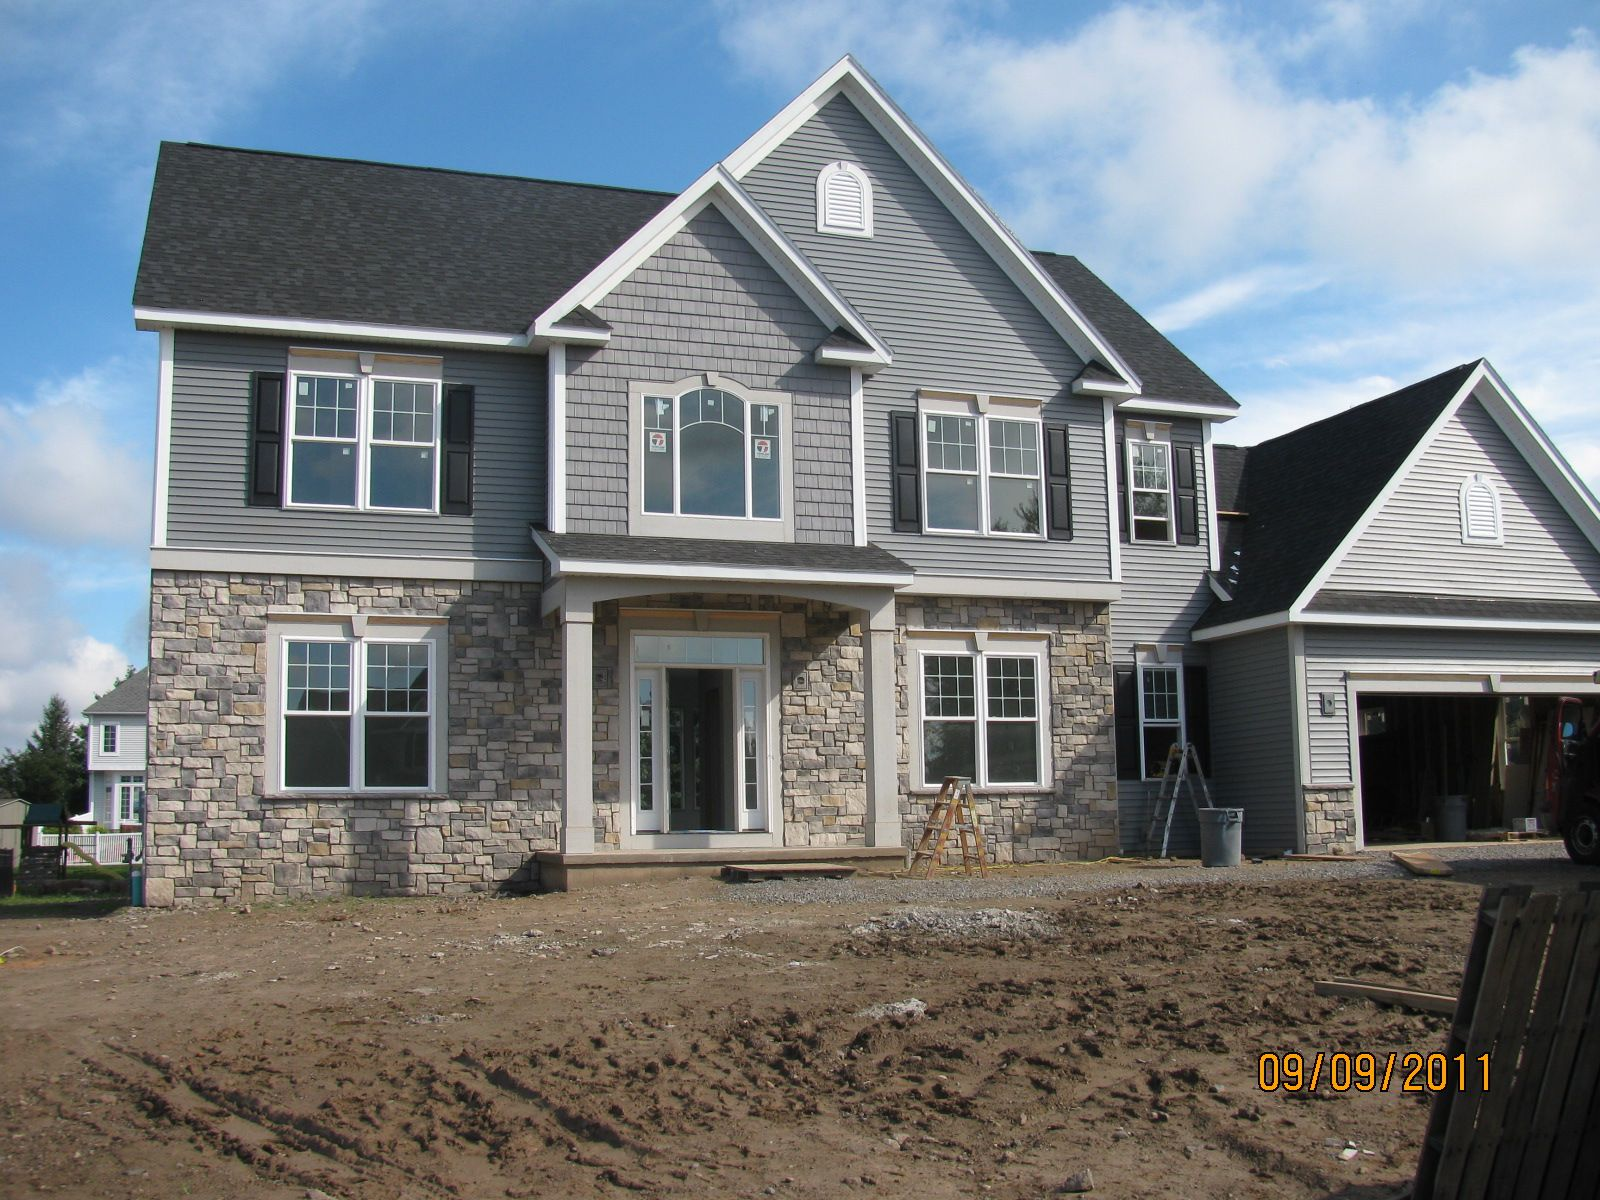 Pictures of houses with stone and siding google search siding pinterest house exterior Types of stone for home exterior